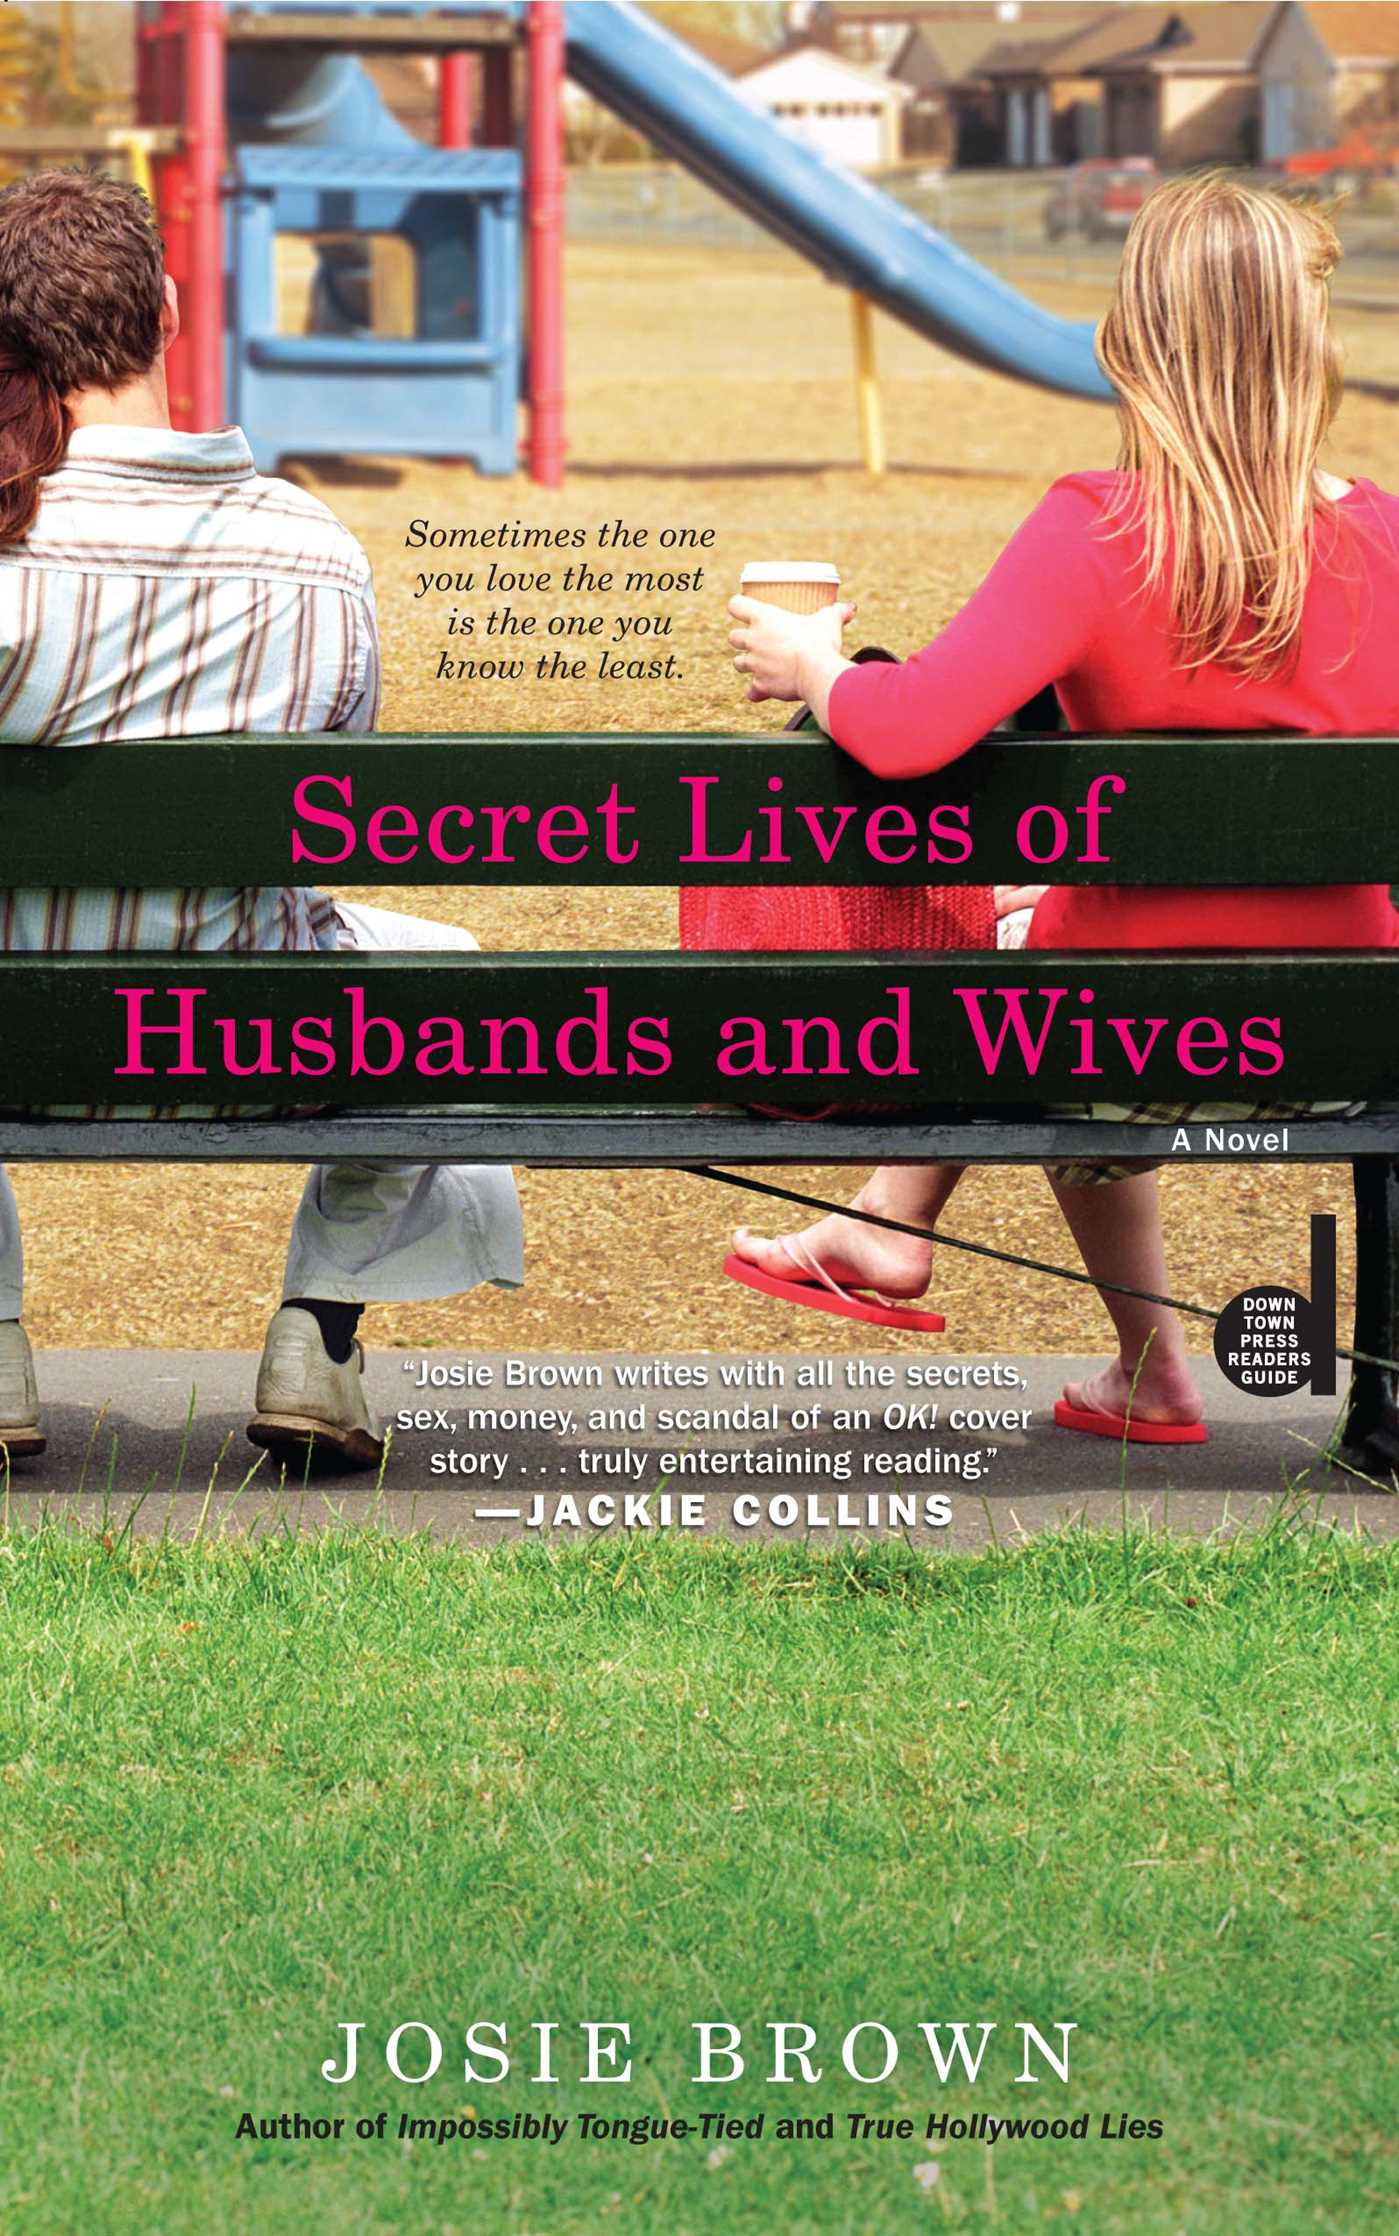 Secret-lives-of-husbands-and-wives-9781439173176_hr